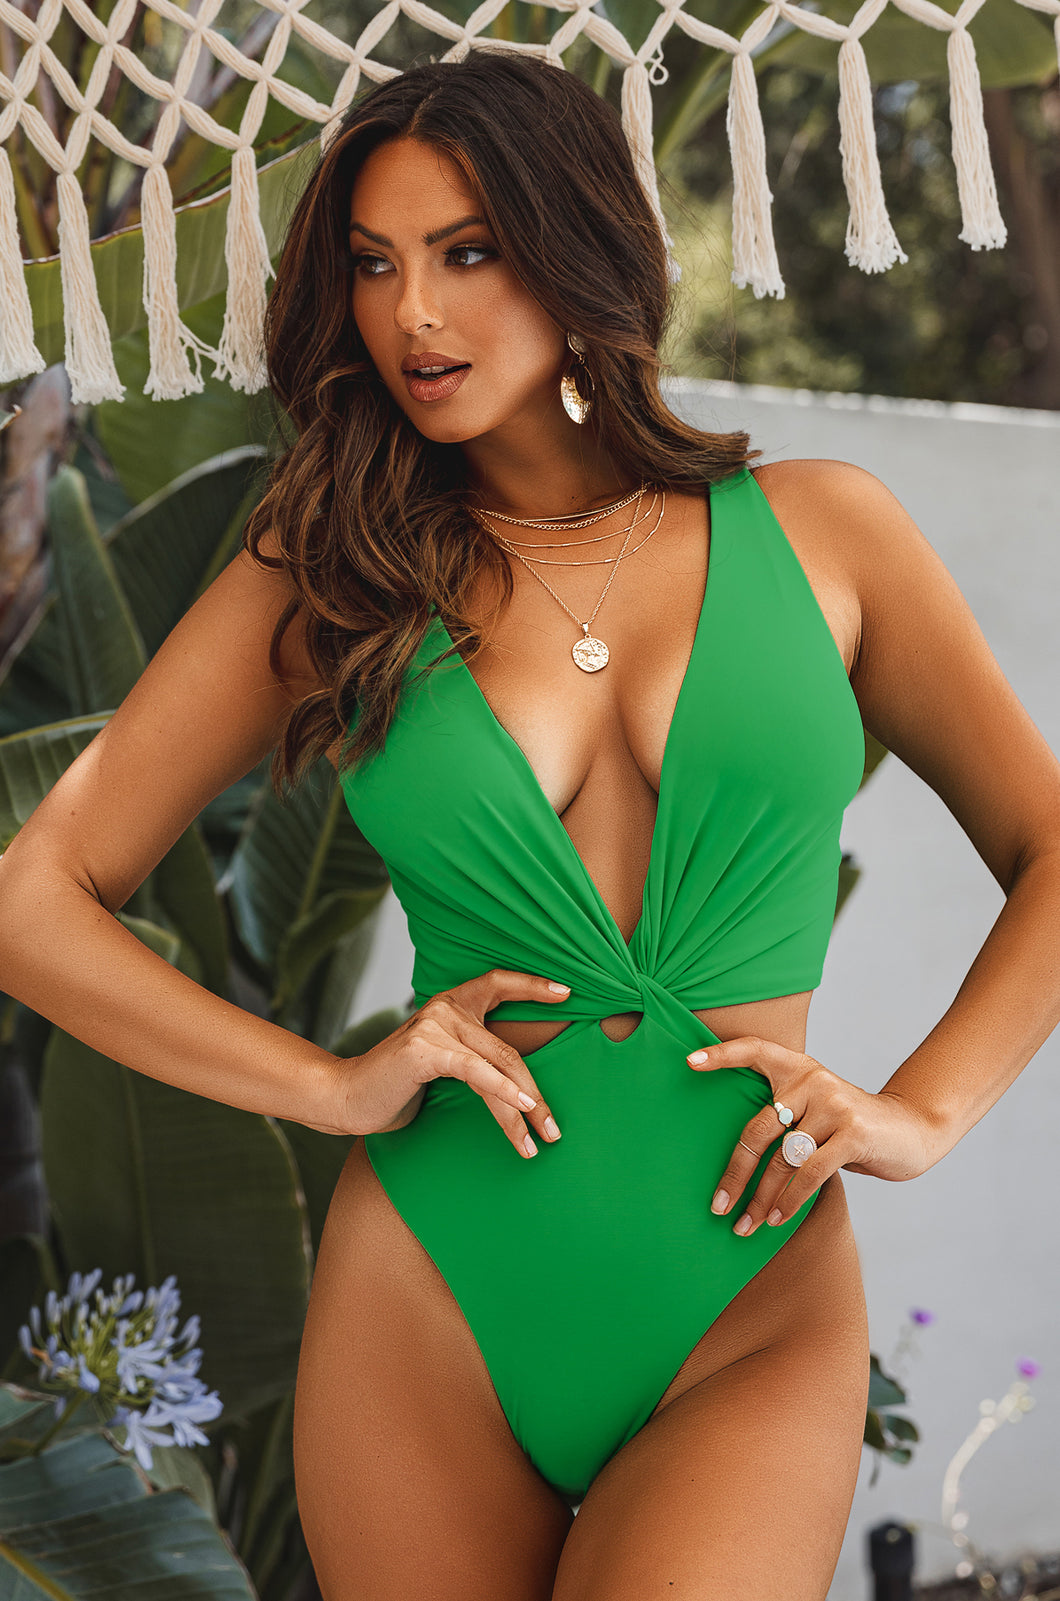 Slaycation Swimsuit - Green